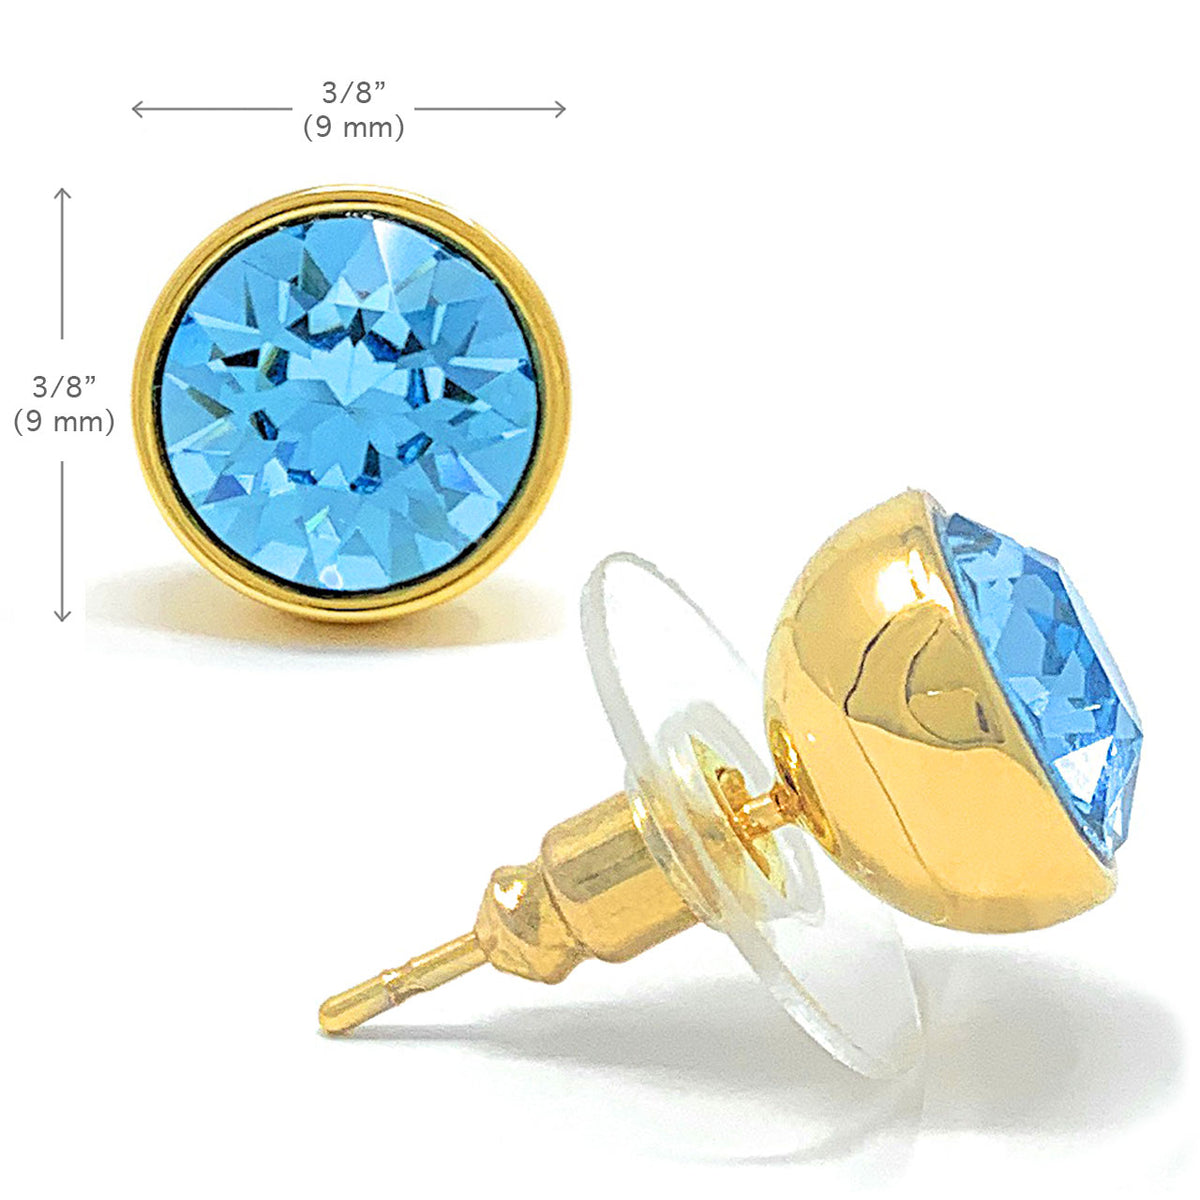 Harley Stud Earrings with Blue Aquamarine Round Crystals from Swarovski Gold Plated - Ed Heart